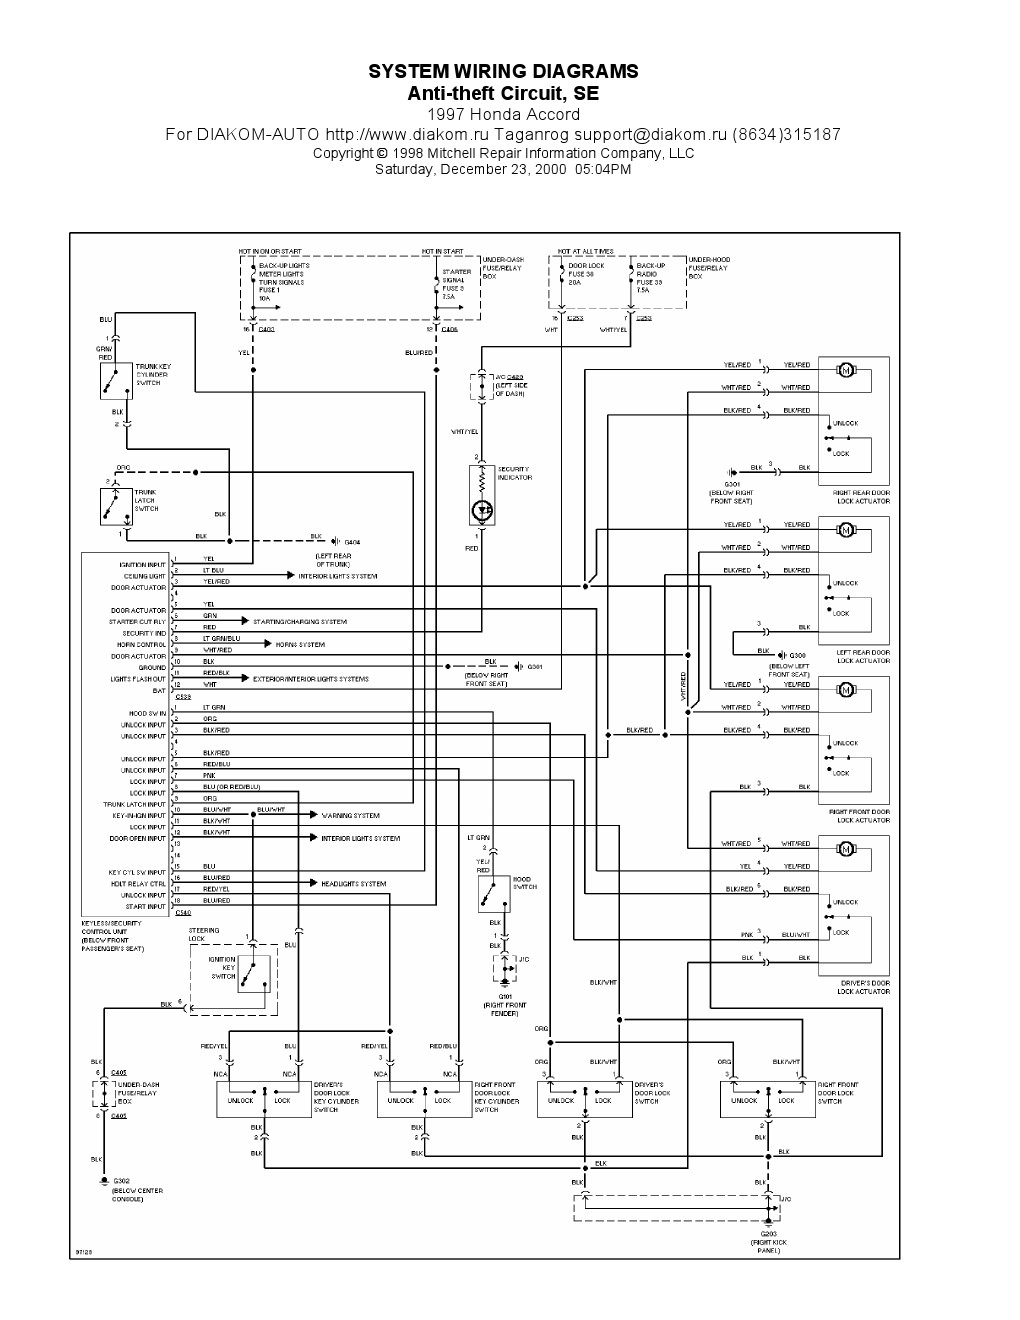 1996 honda accord ignition wiring diagram Collection-Honda Wiring Diagrams Lovely 1994 Honda Accord Wiring Diagram & Honda Civic Ignition Wiring 13-f